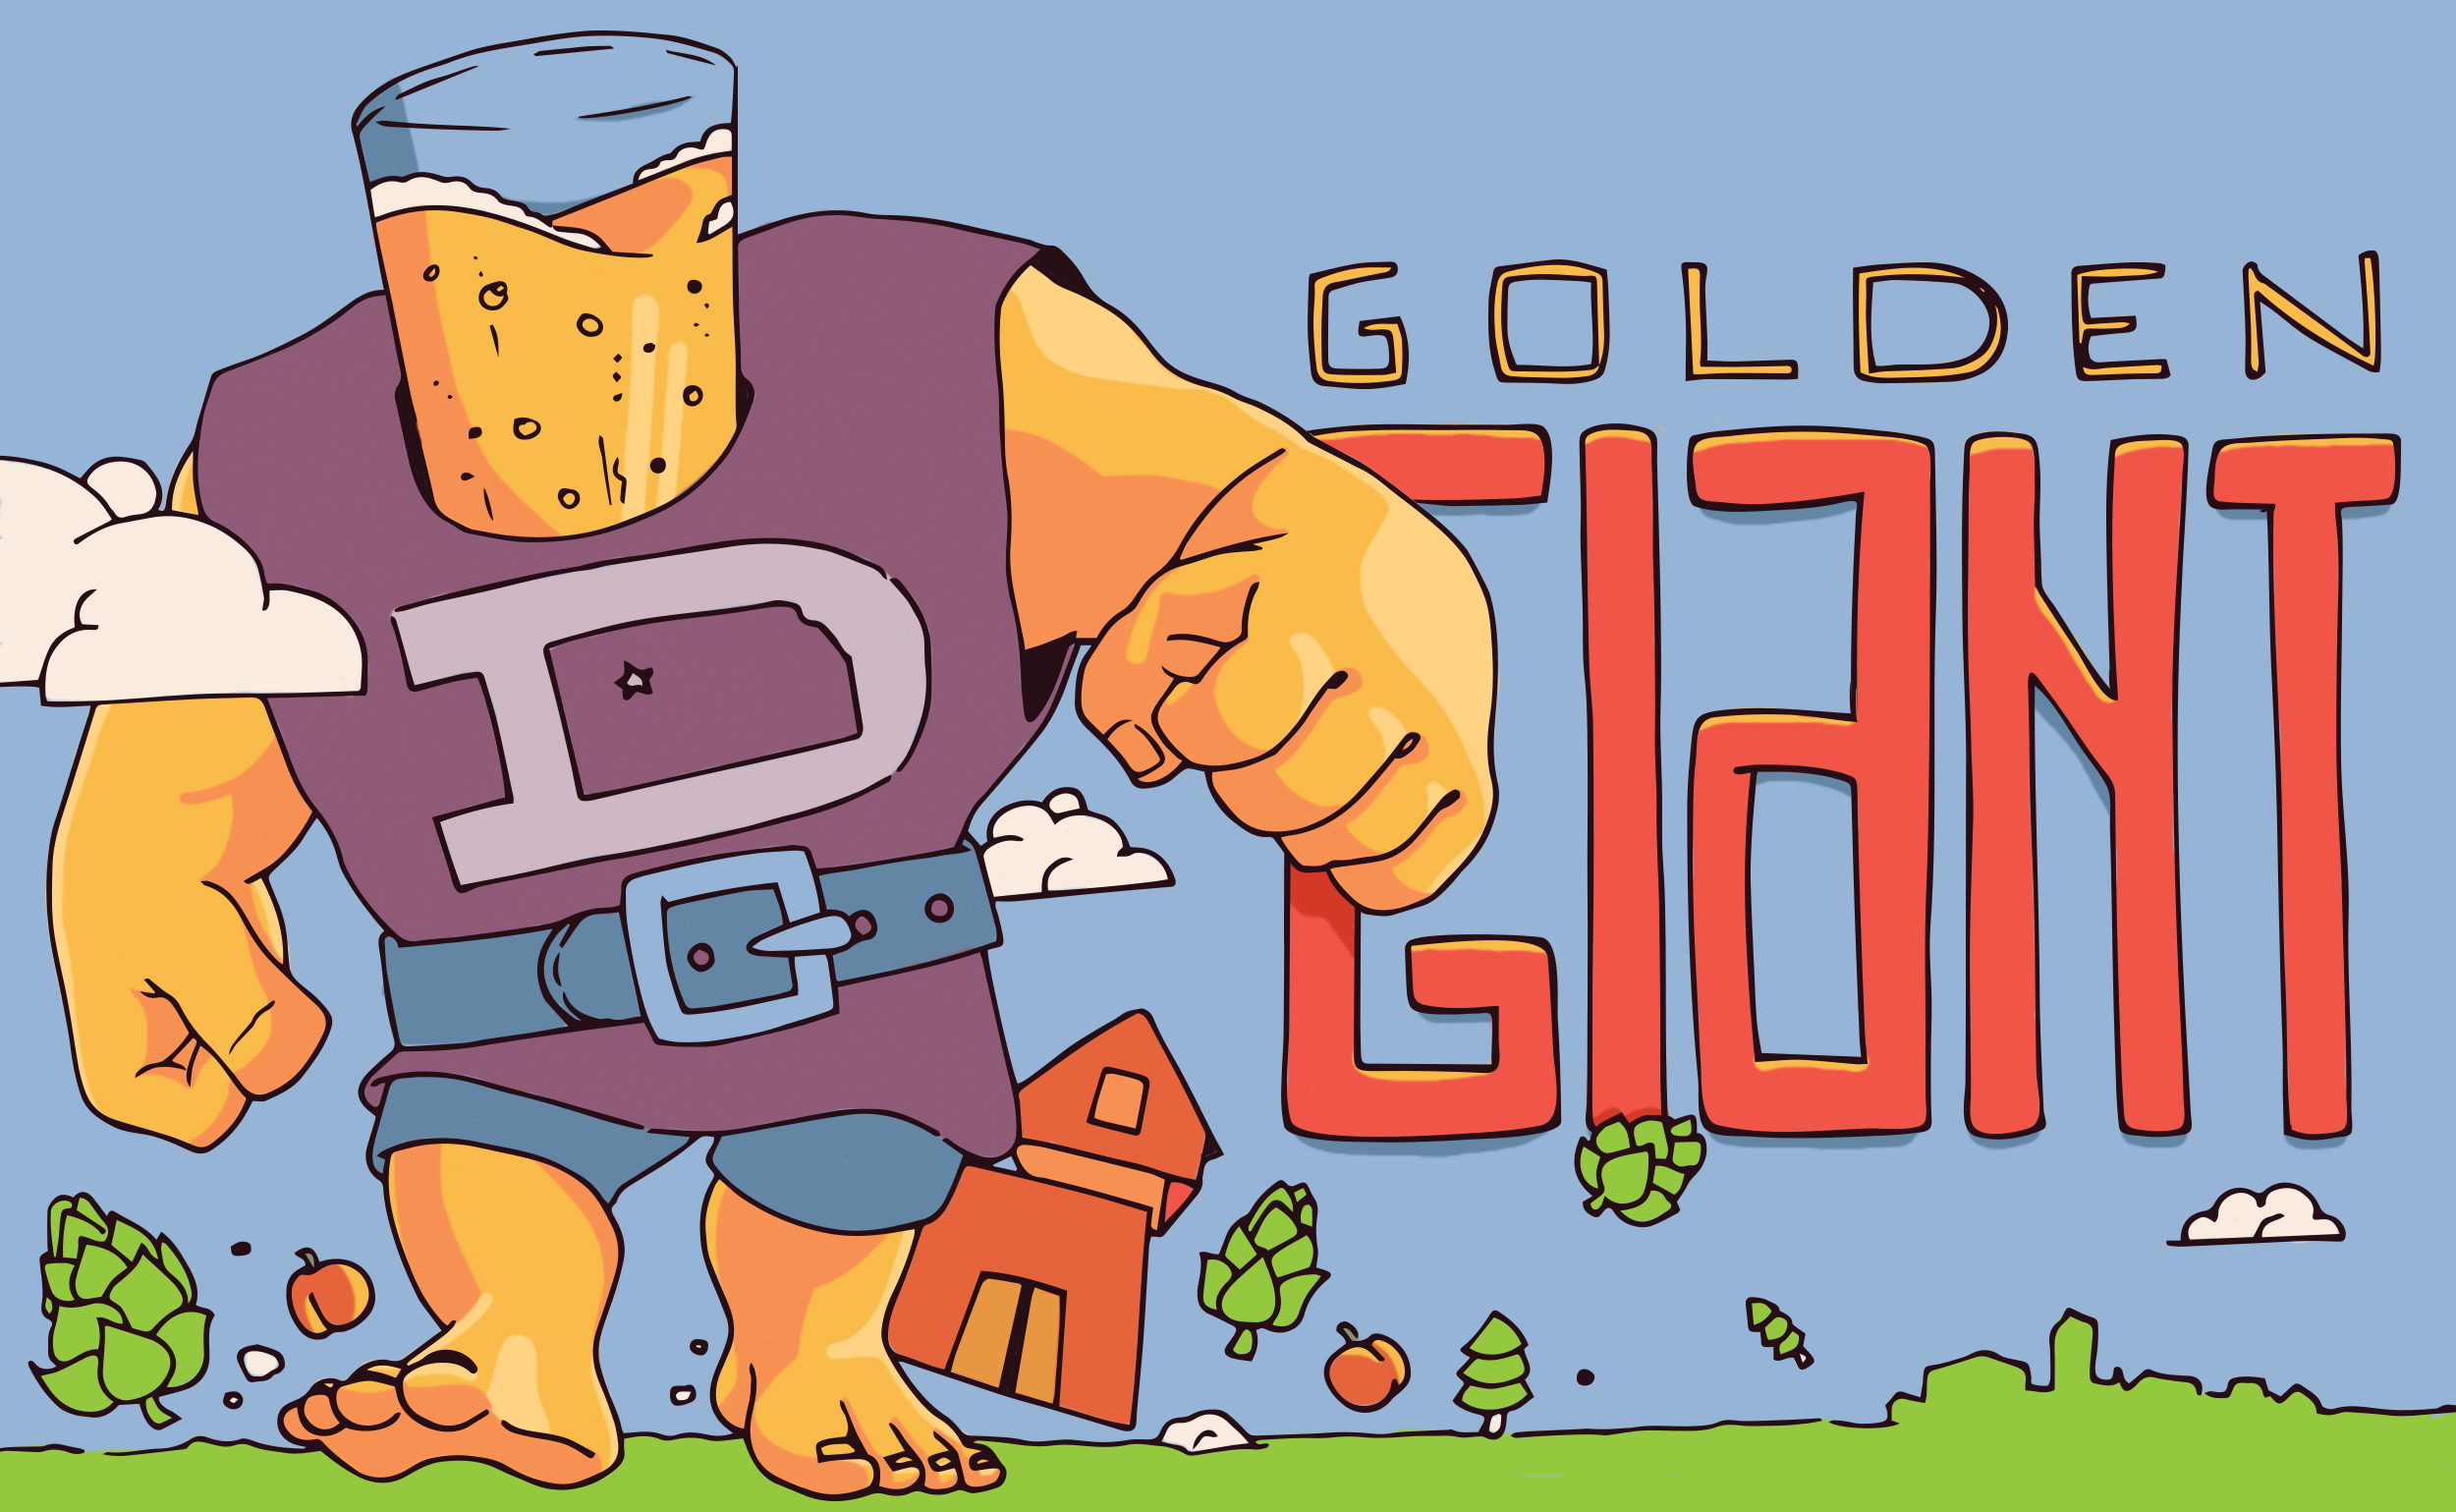 seasonals_0001_Golden_giant.jpg